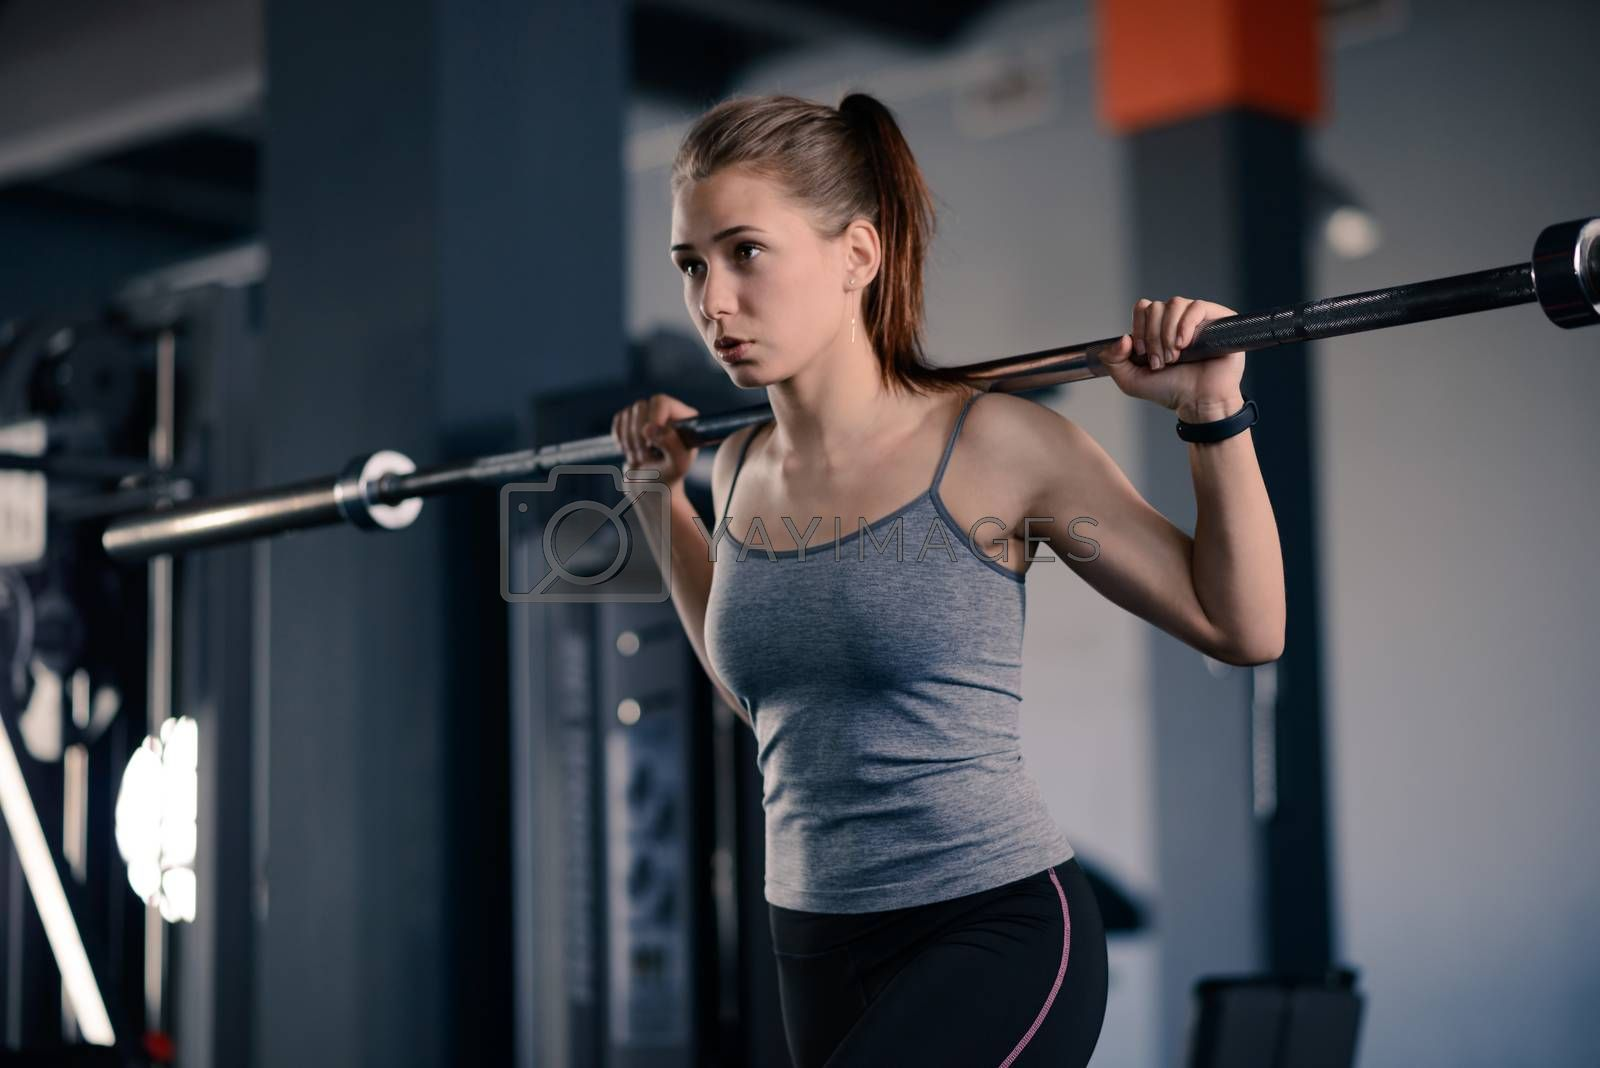 Attractive Young Sports Woman Doing Lunges with Barbell in the Gym. Fitness and Healthy Lifestyle Concept.